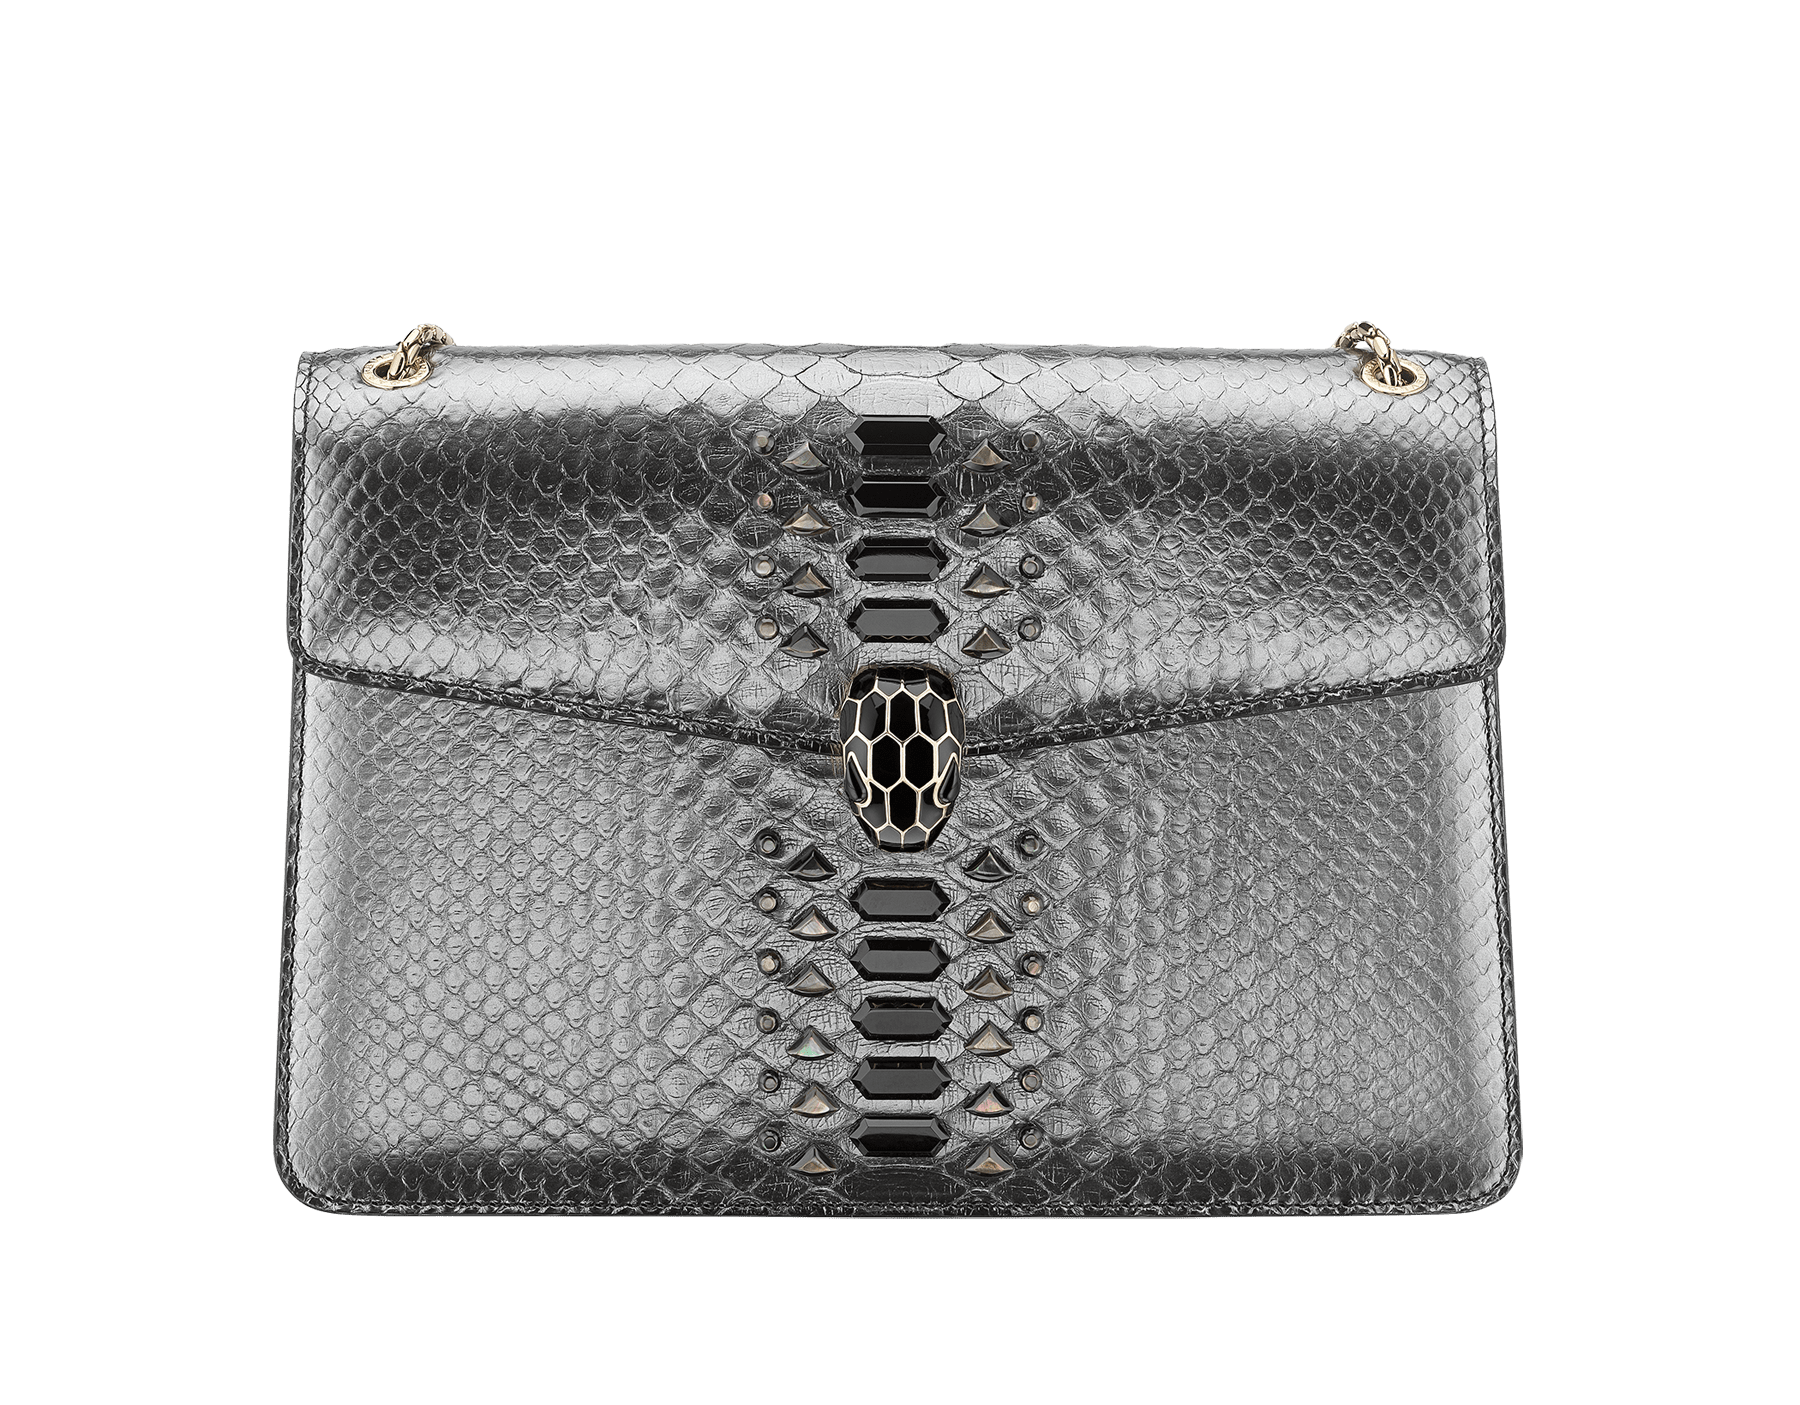 """""""Serpenti Forever"""" shoulder bag black Diamond Glam python skin. Iconic snake head closure in palladium plated brass enriched with black enamel and black onyx eyes. 521-Pc image 1"""